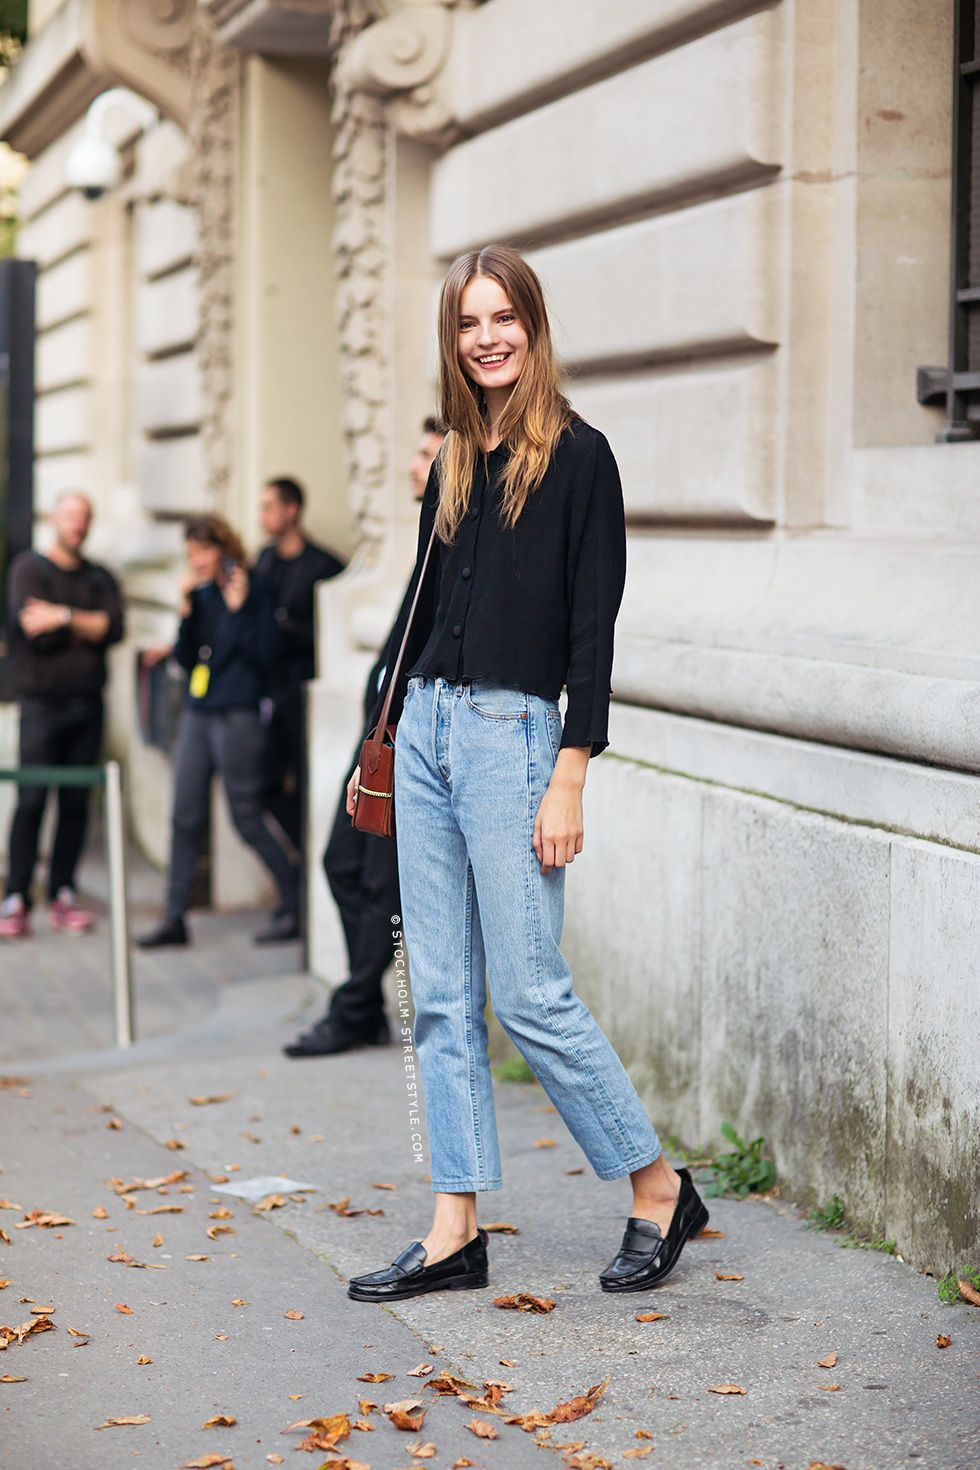 Model off Duty Tell me about your outfit, what you are wearing? - Im wearing a vintage sweater,...